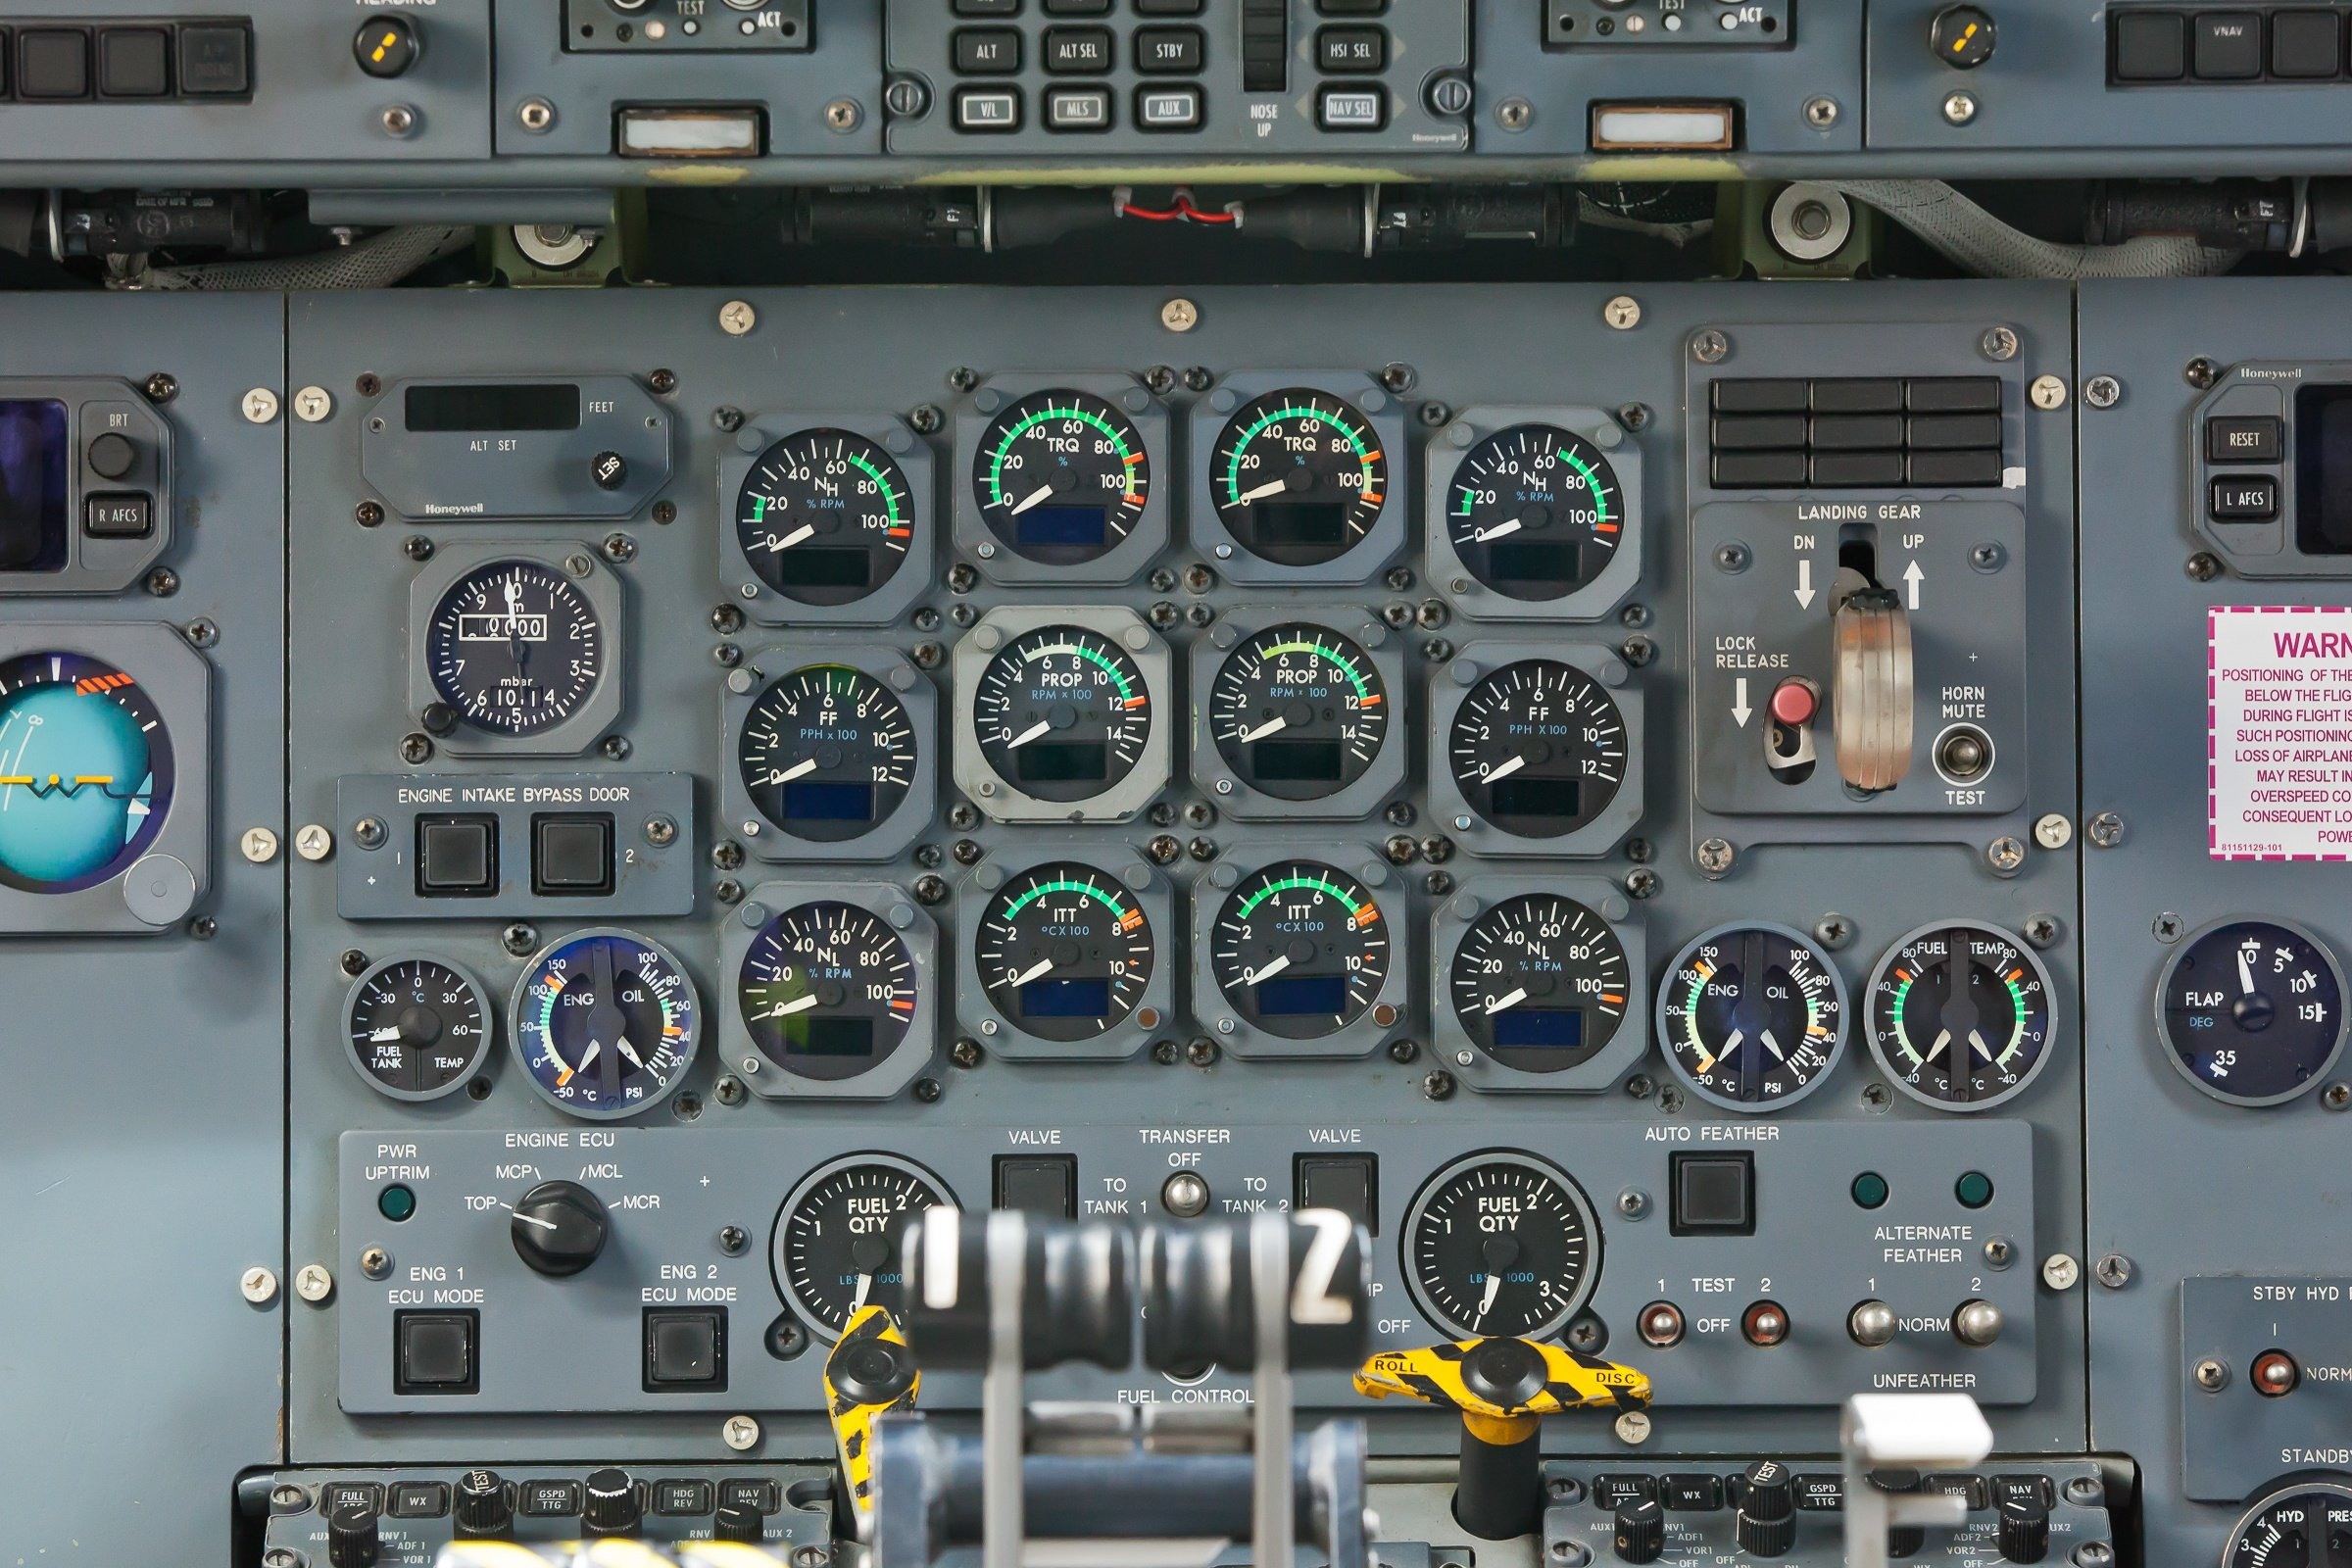 General_Industrial_-_Barometric_-_Altimeters3